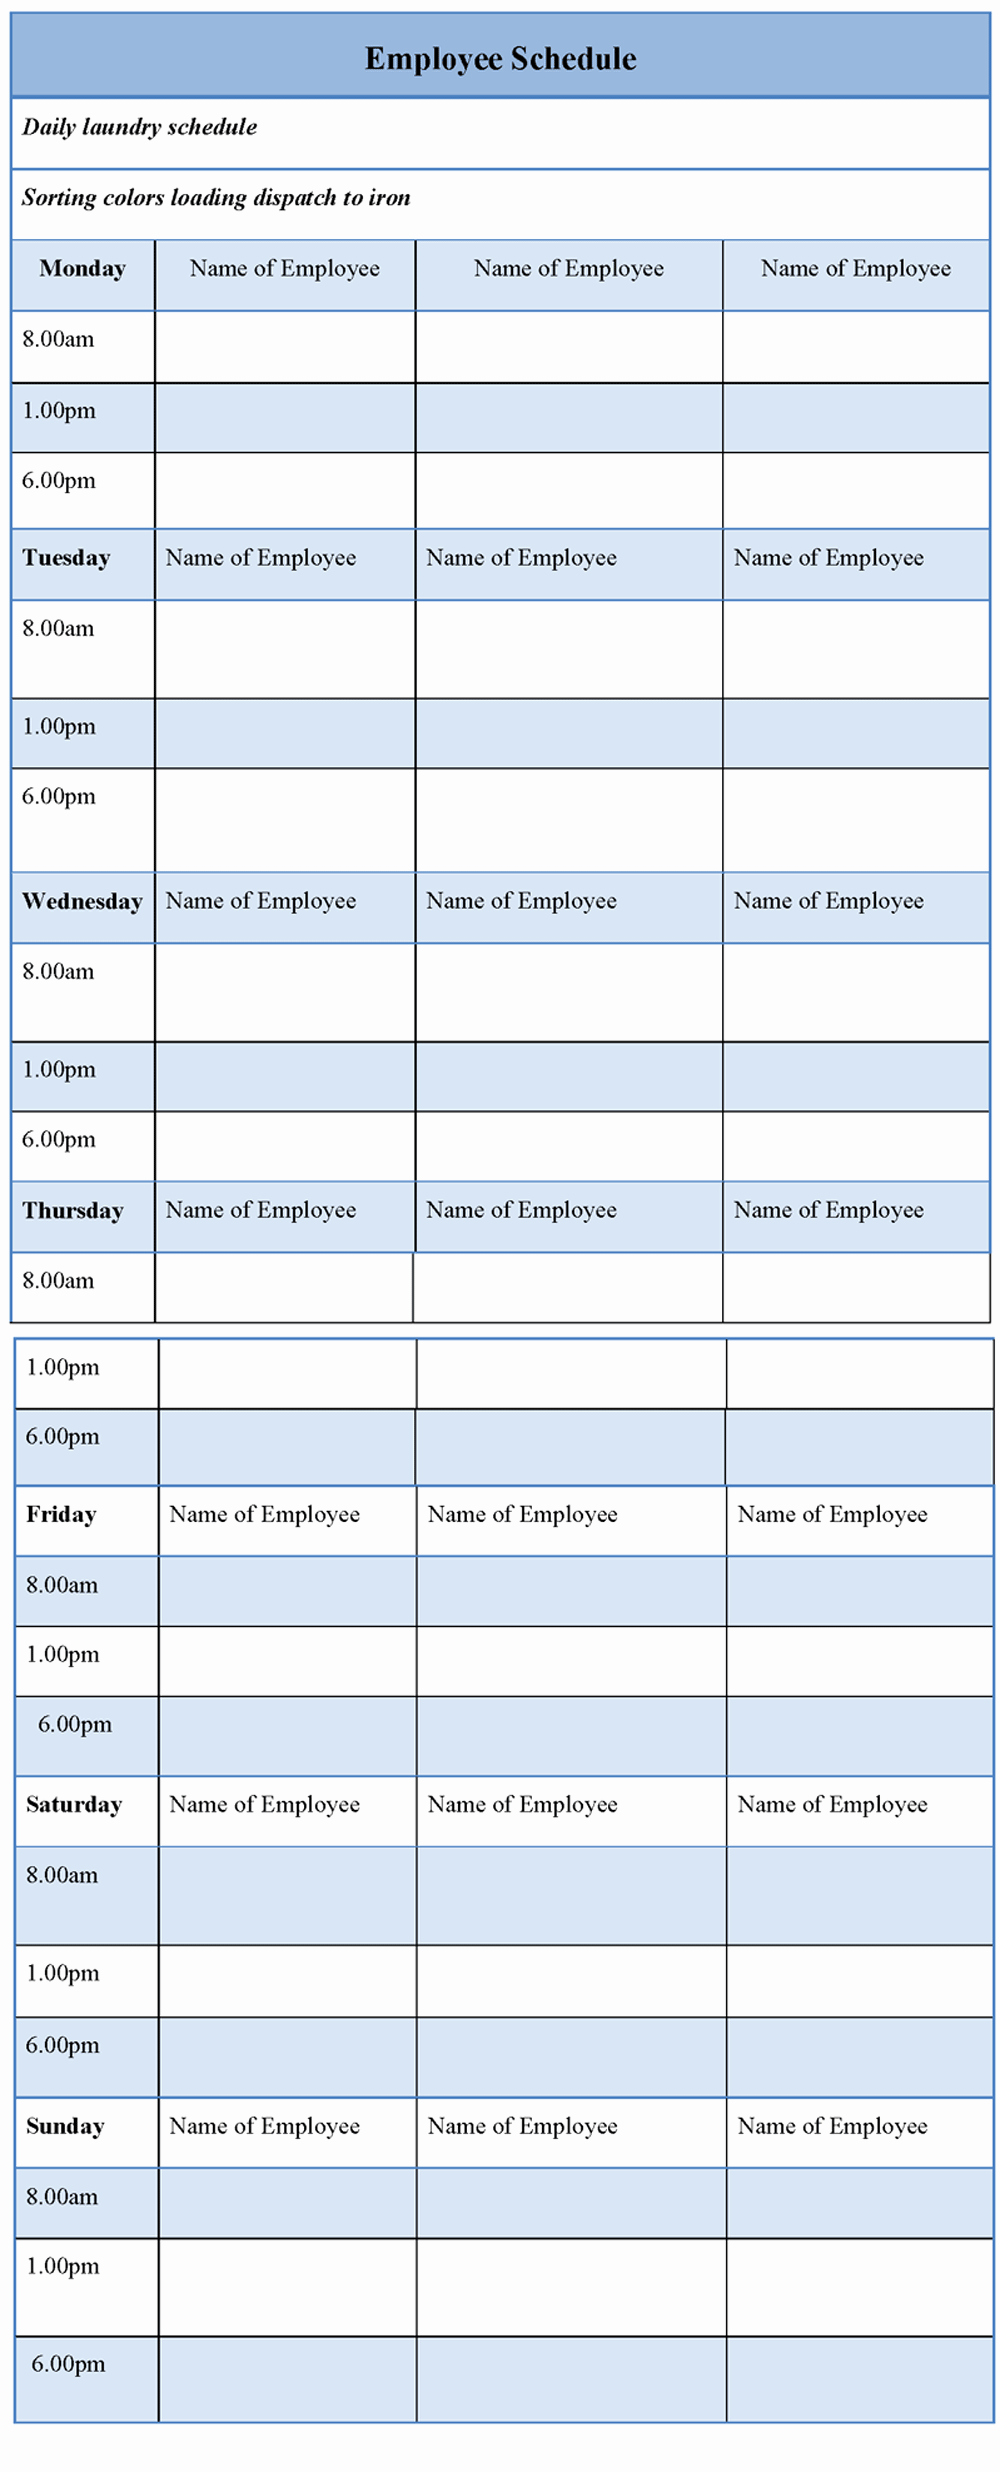 Sample Work Schedule Template New Employee Schedule Example Of Employee Schedule Template